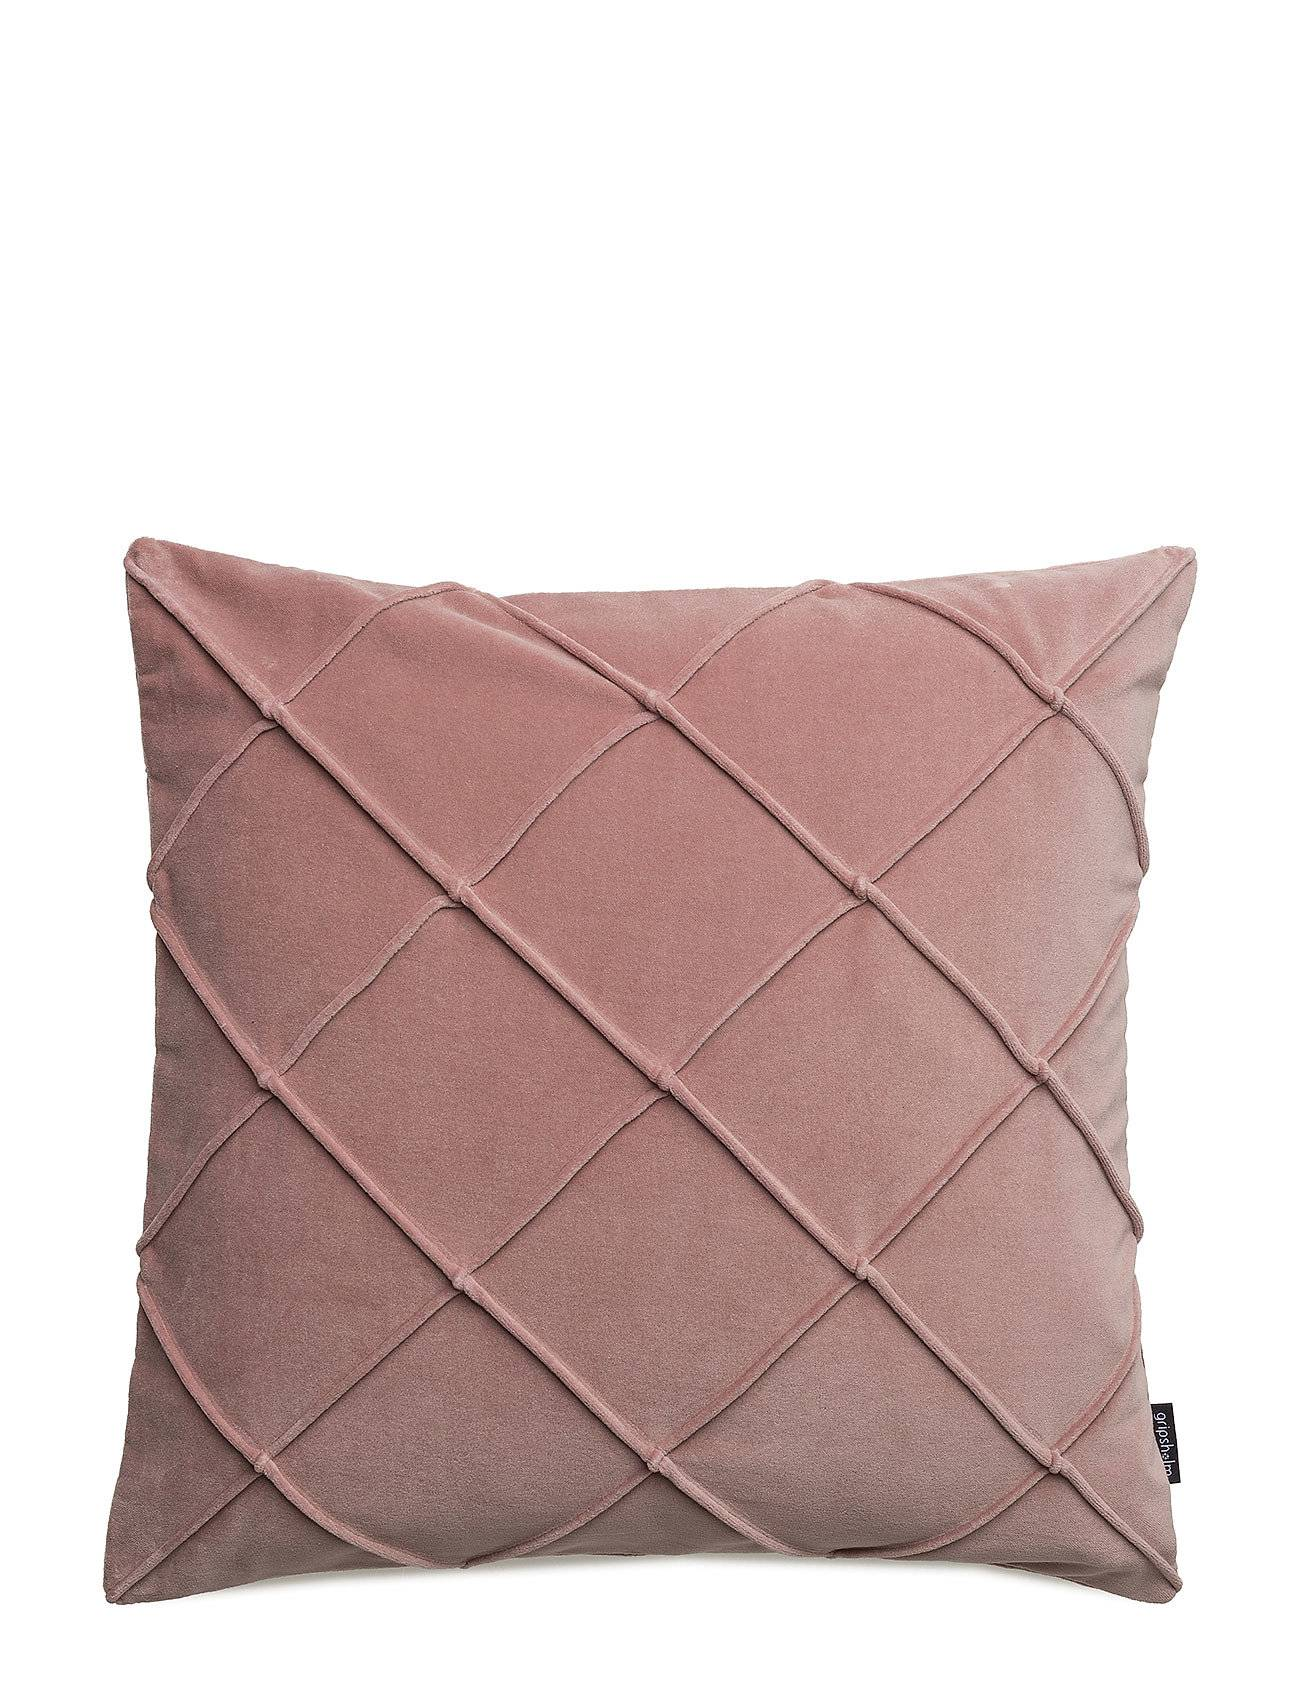 Gripsholm Cushion Cover Henry